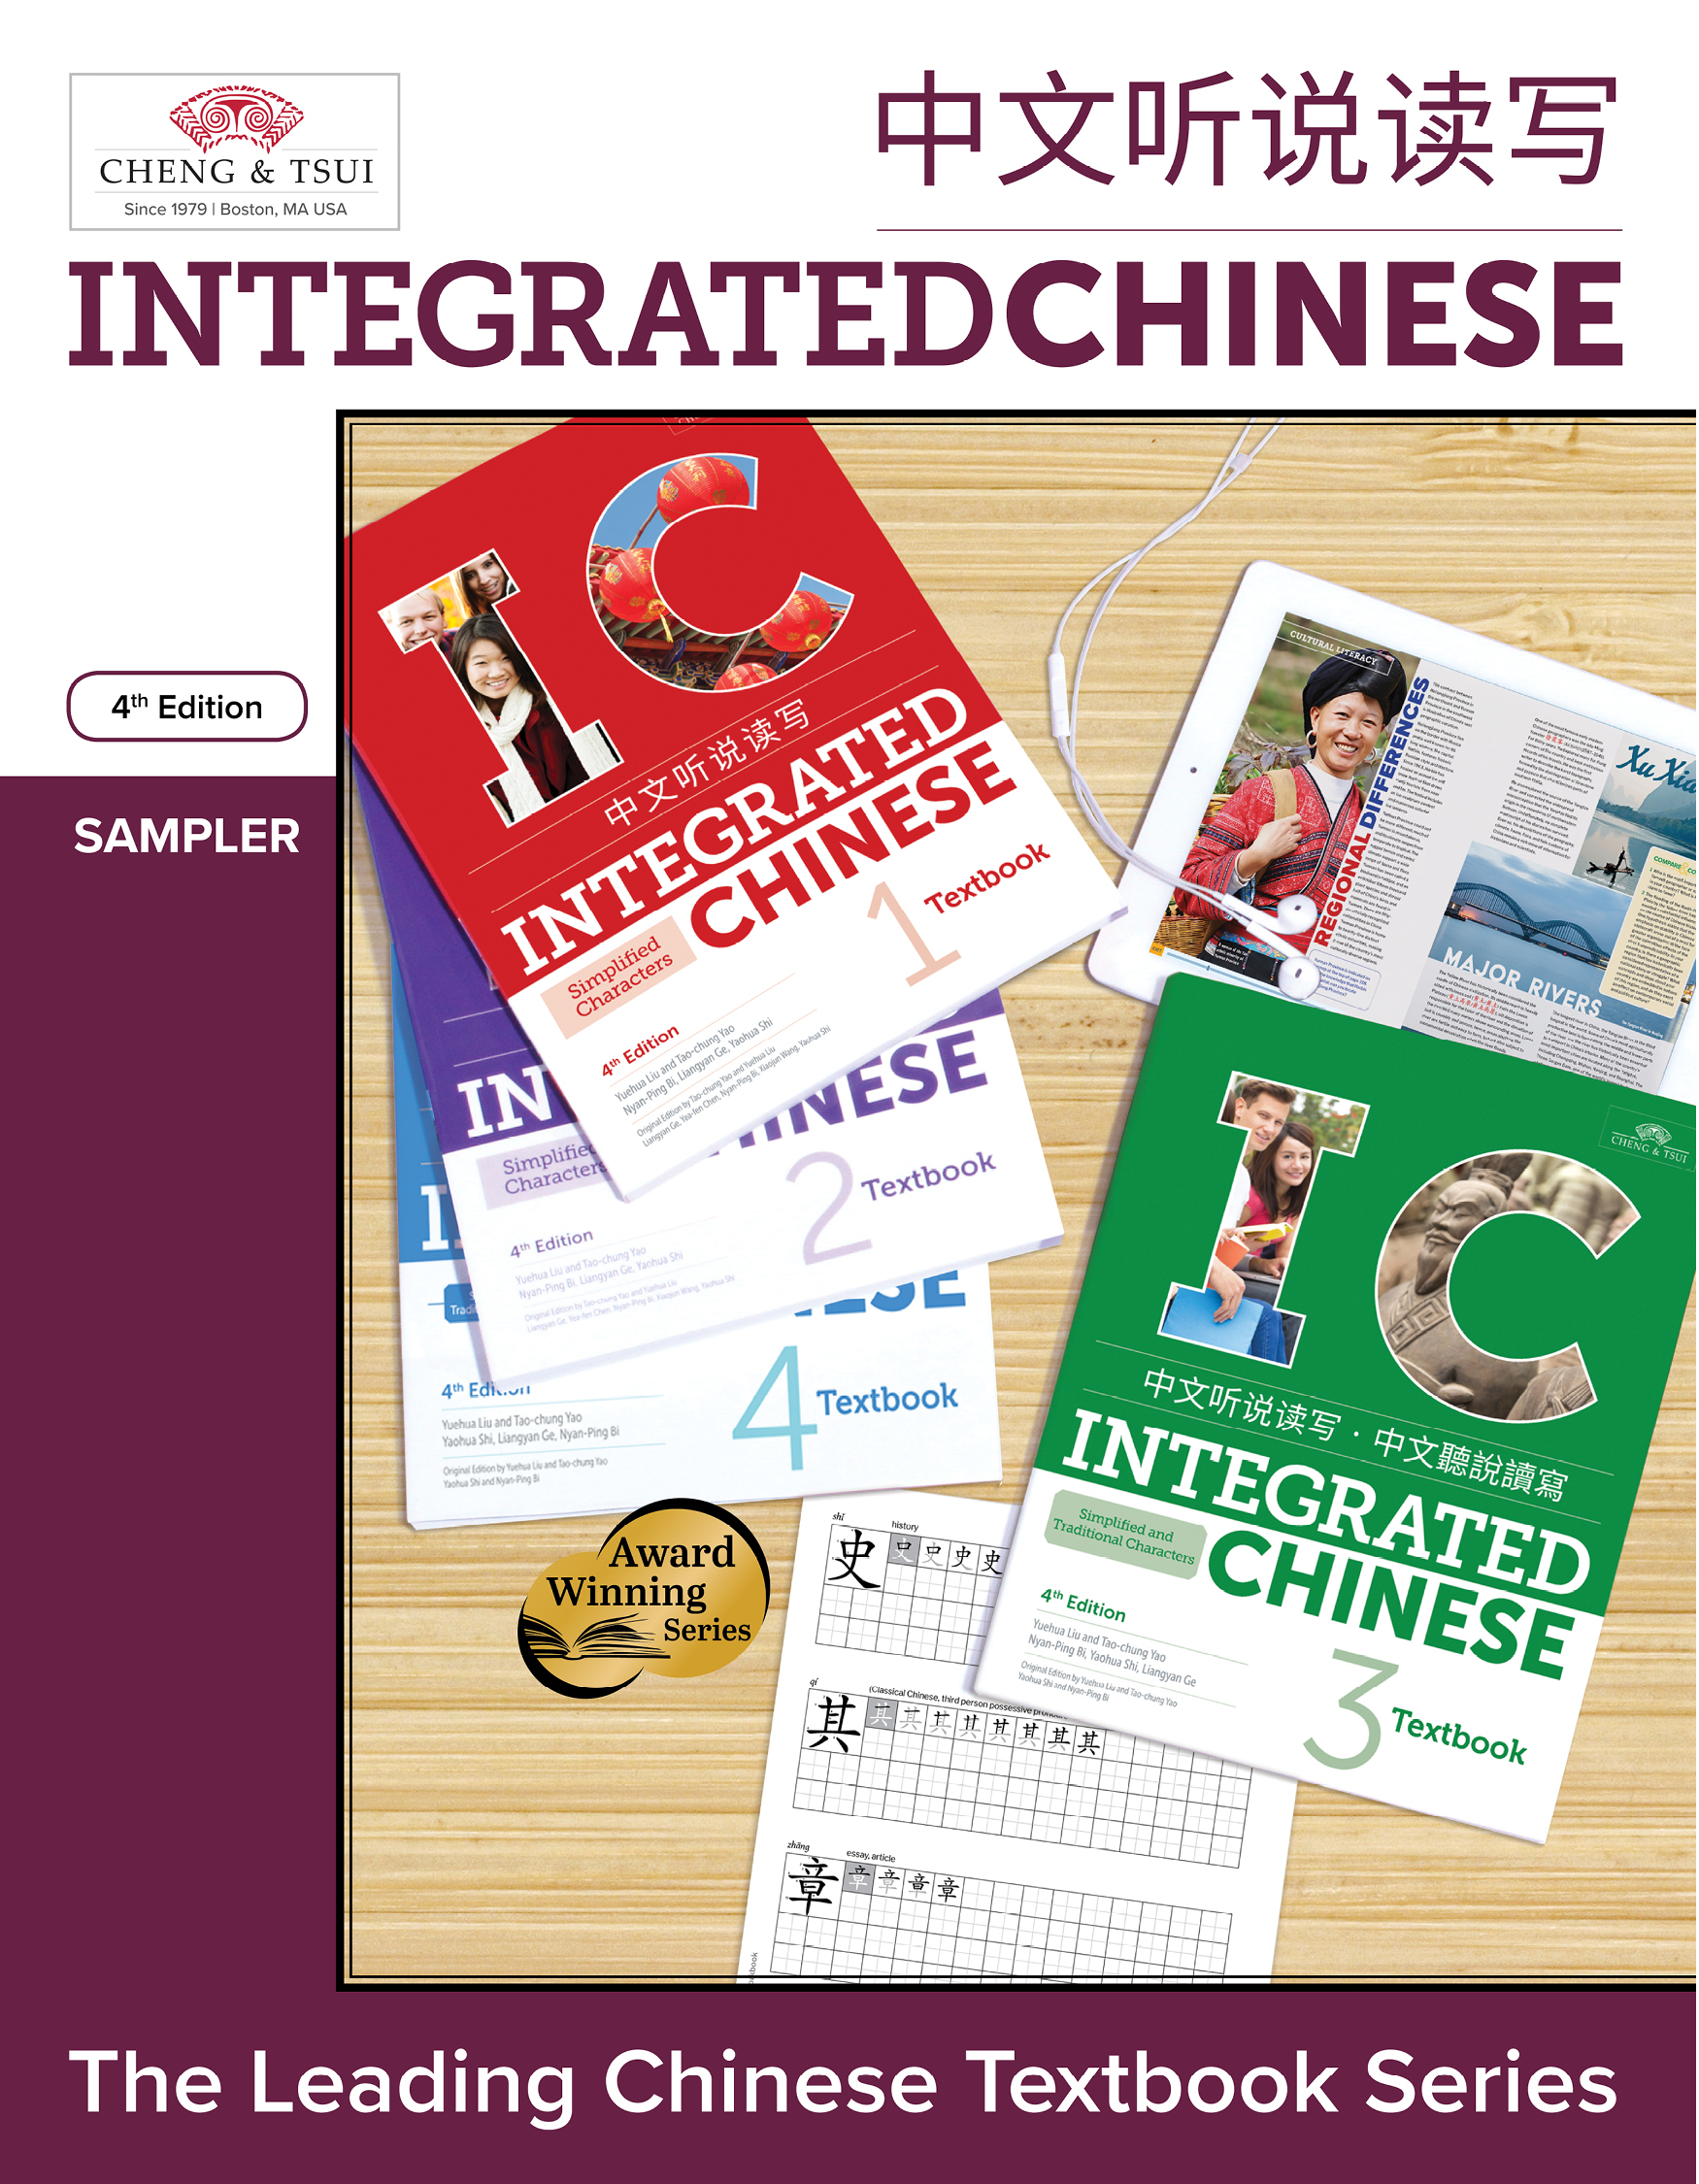 Integrated Chinese 4th Edition Sampler